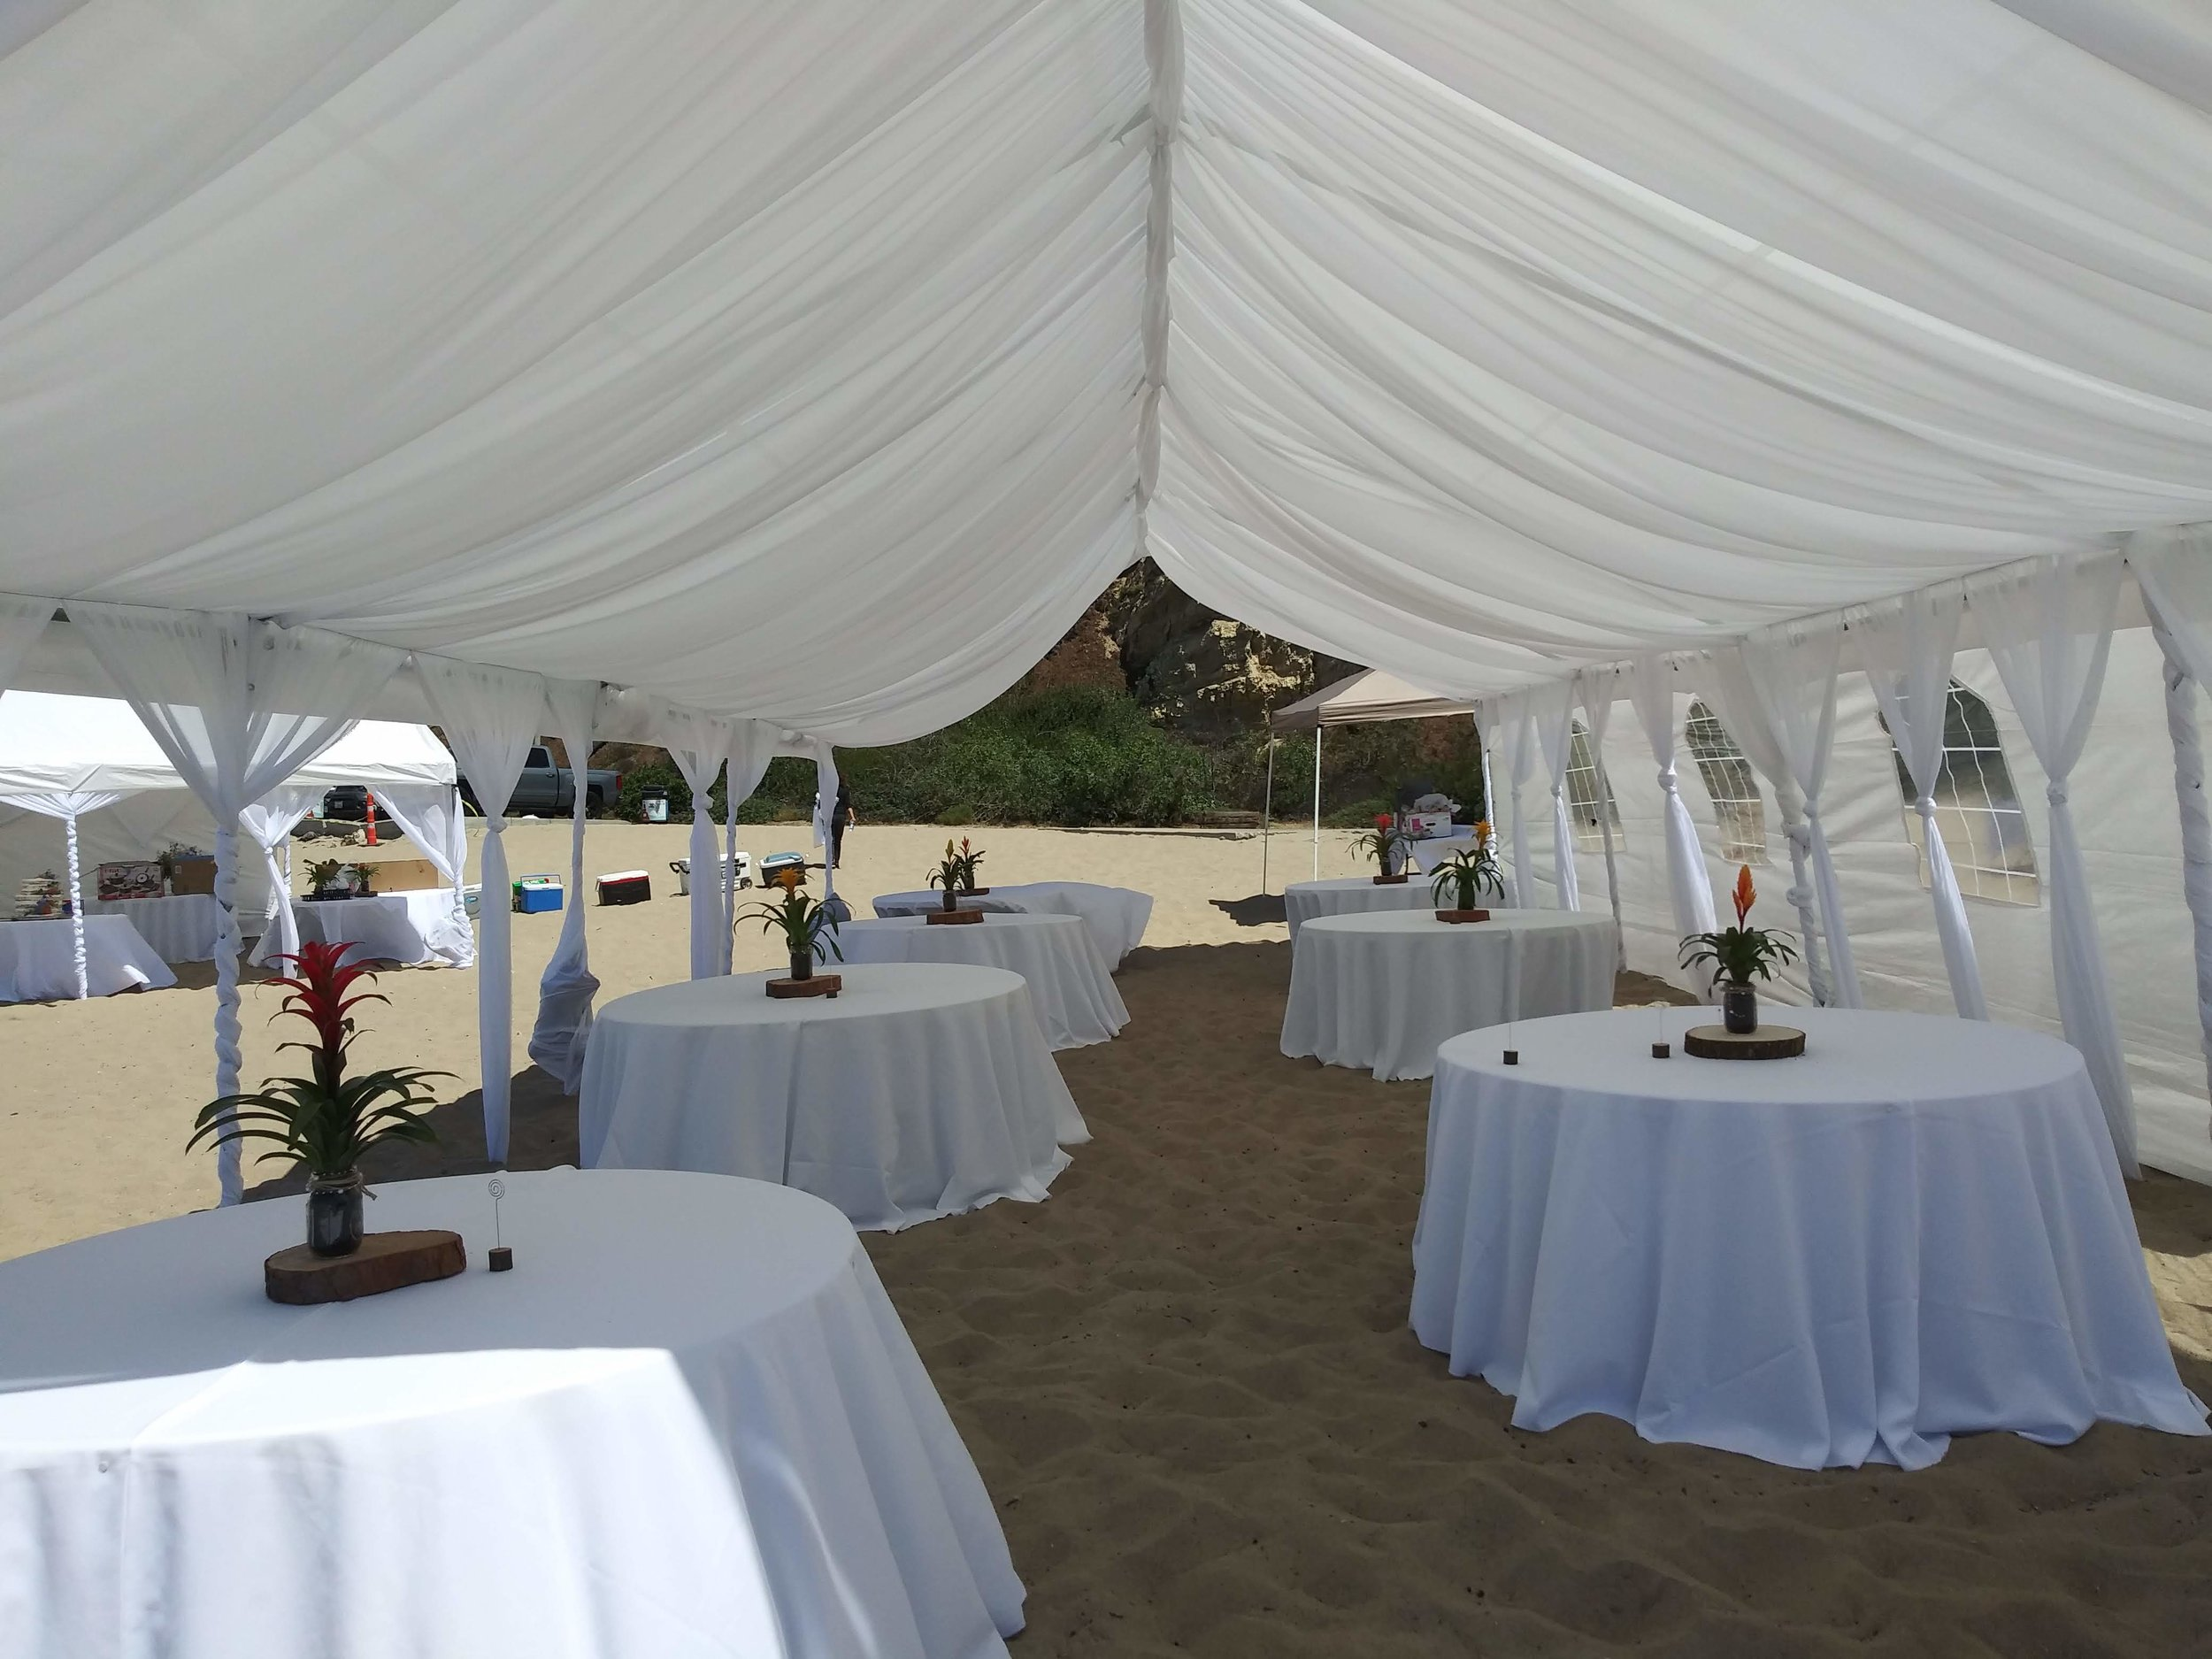 - This is a drape and tent rental set up at Malibu beach. Party Rental Creation covers parties in Malibu, Pointe View rental.